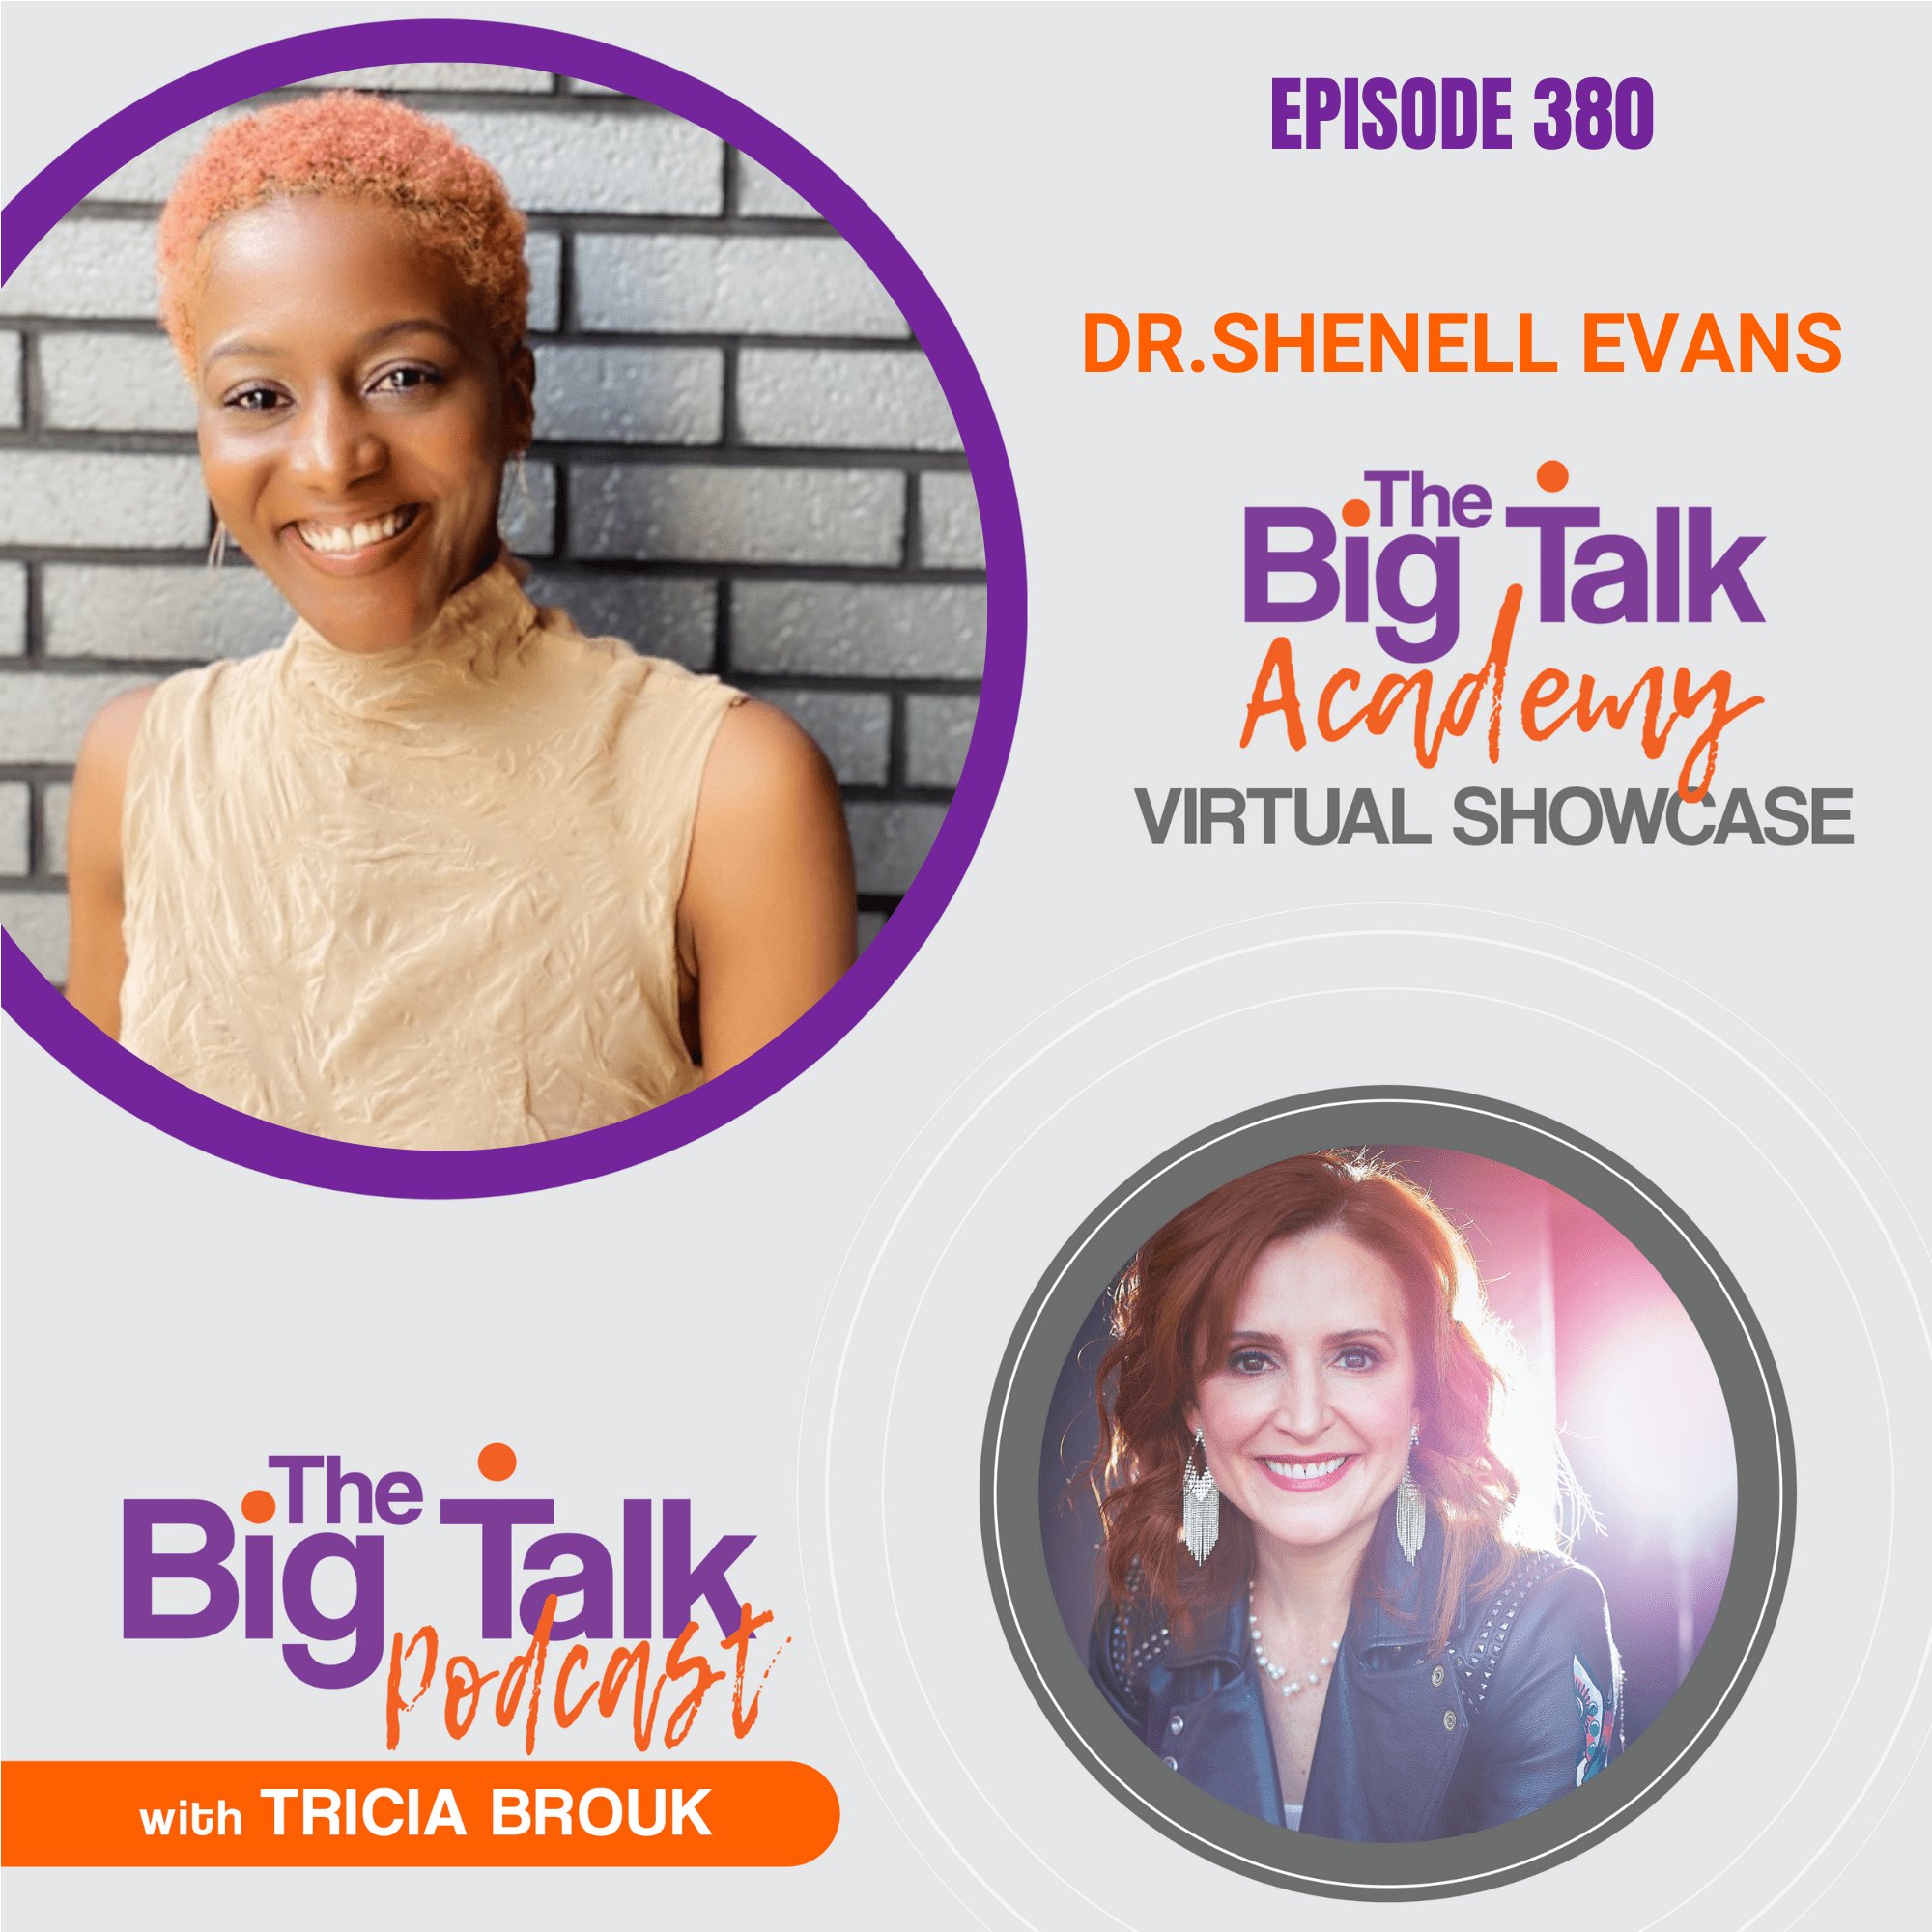 Episode 380 Virtual Showcase with Dr. Shenell Evans